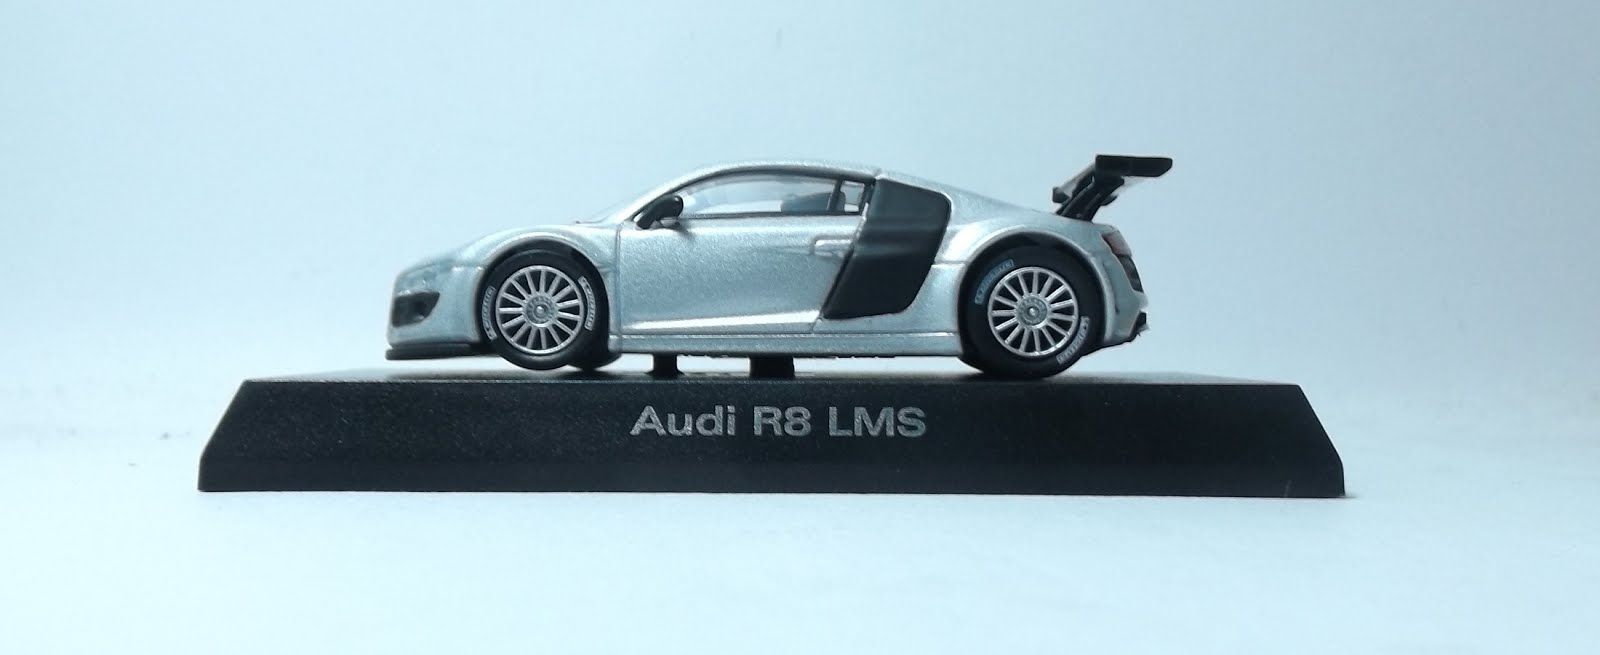 diecast kyosho audi r8 lms side photo